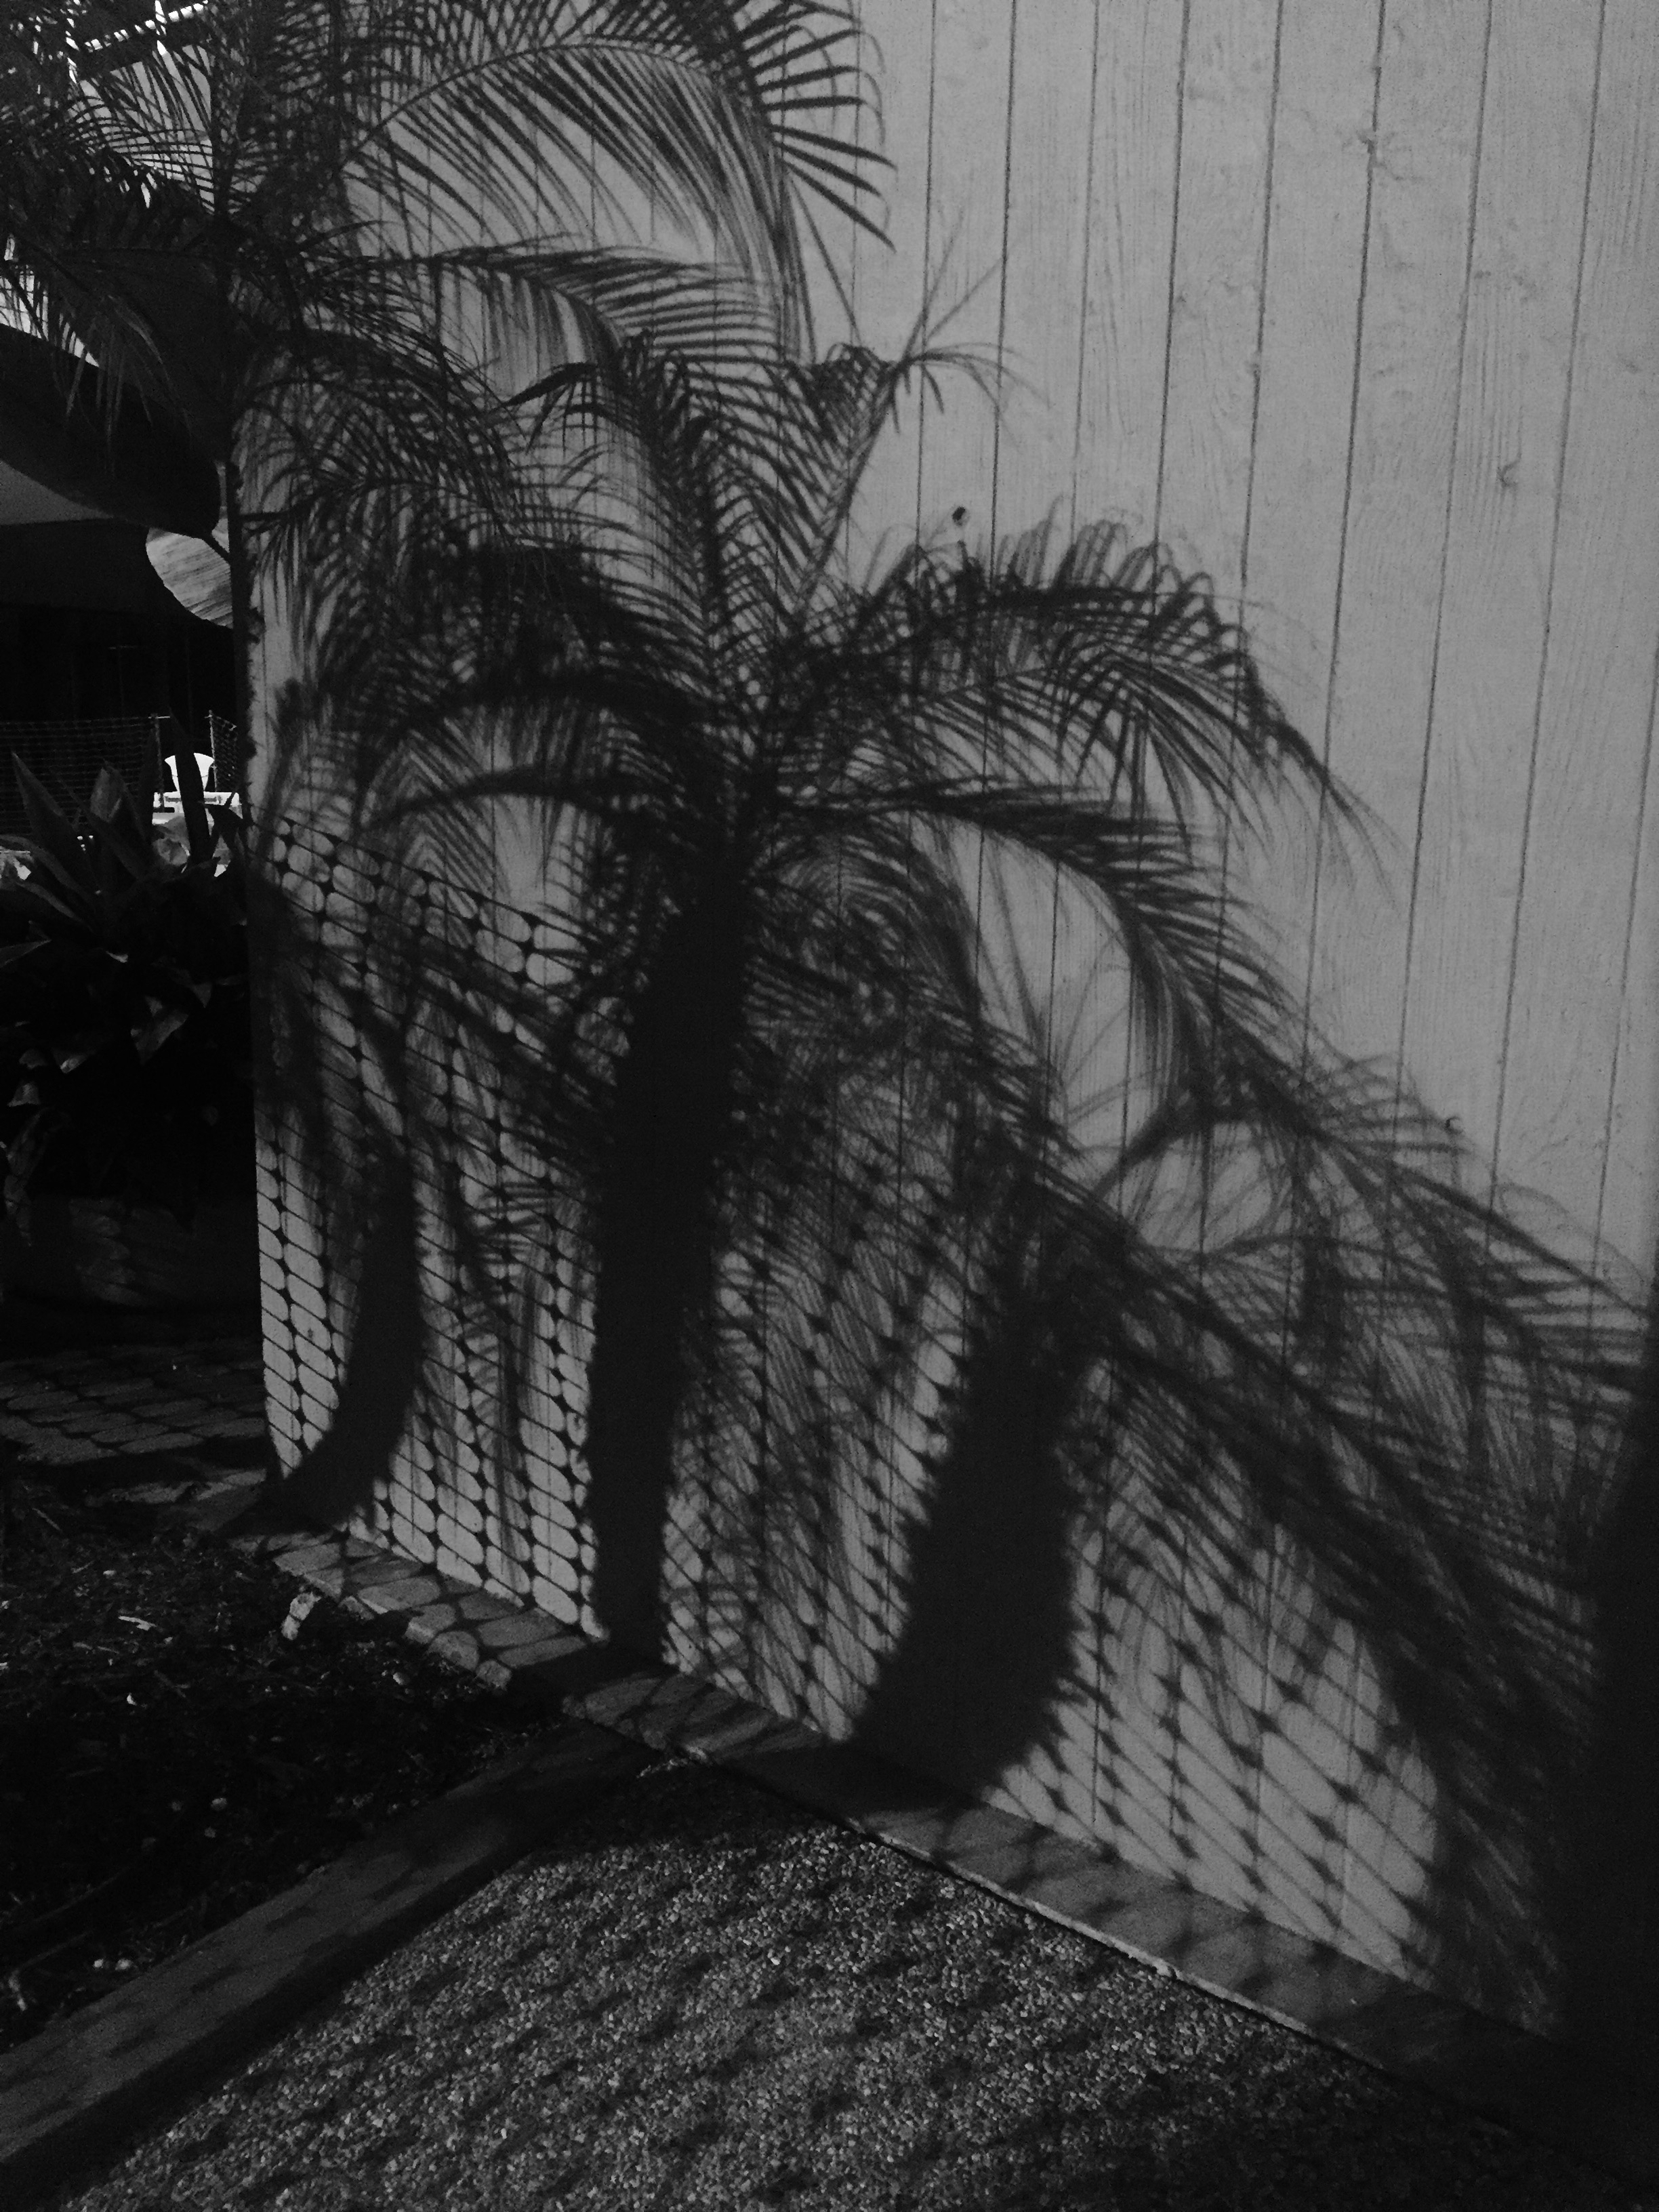 Shadows of some palm trees in Downtown Los Angeles